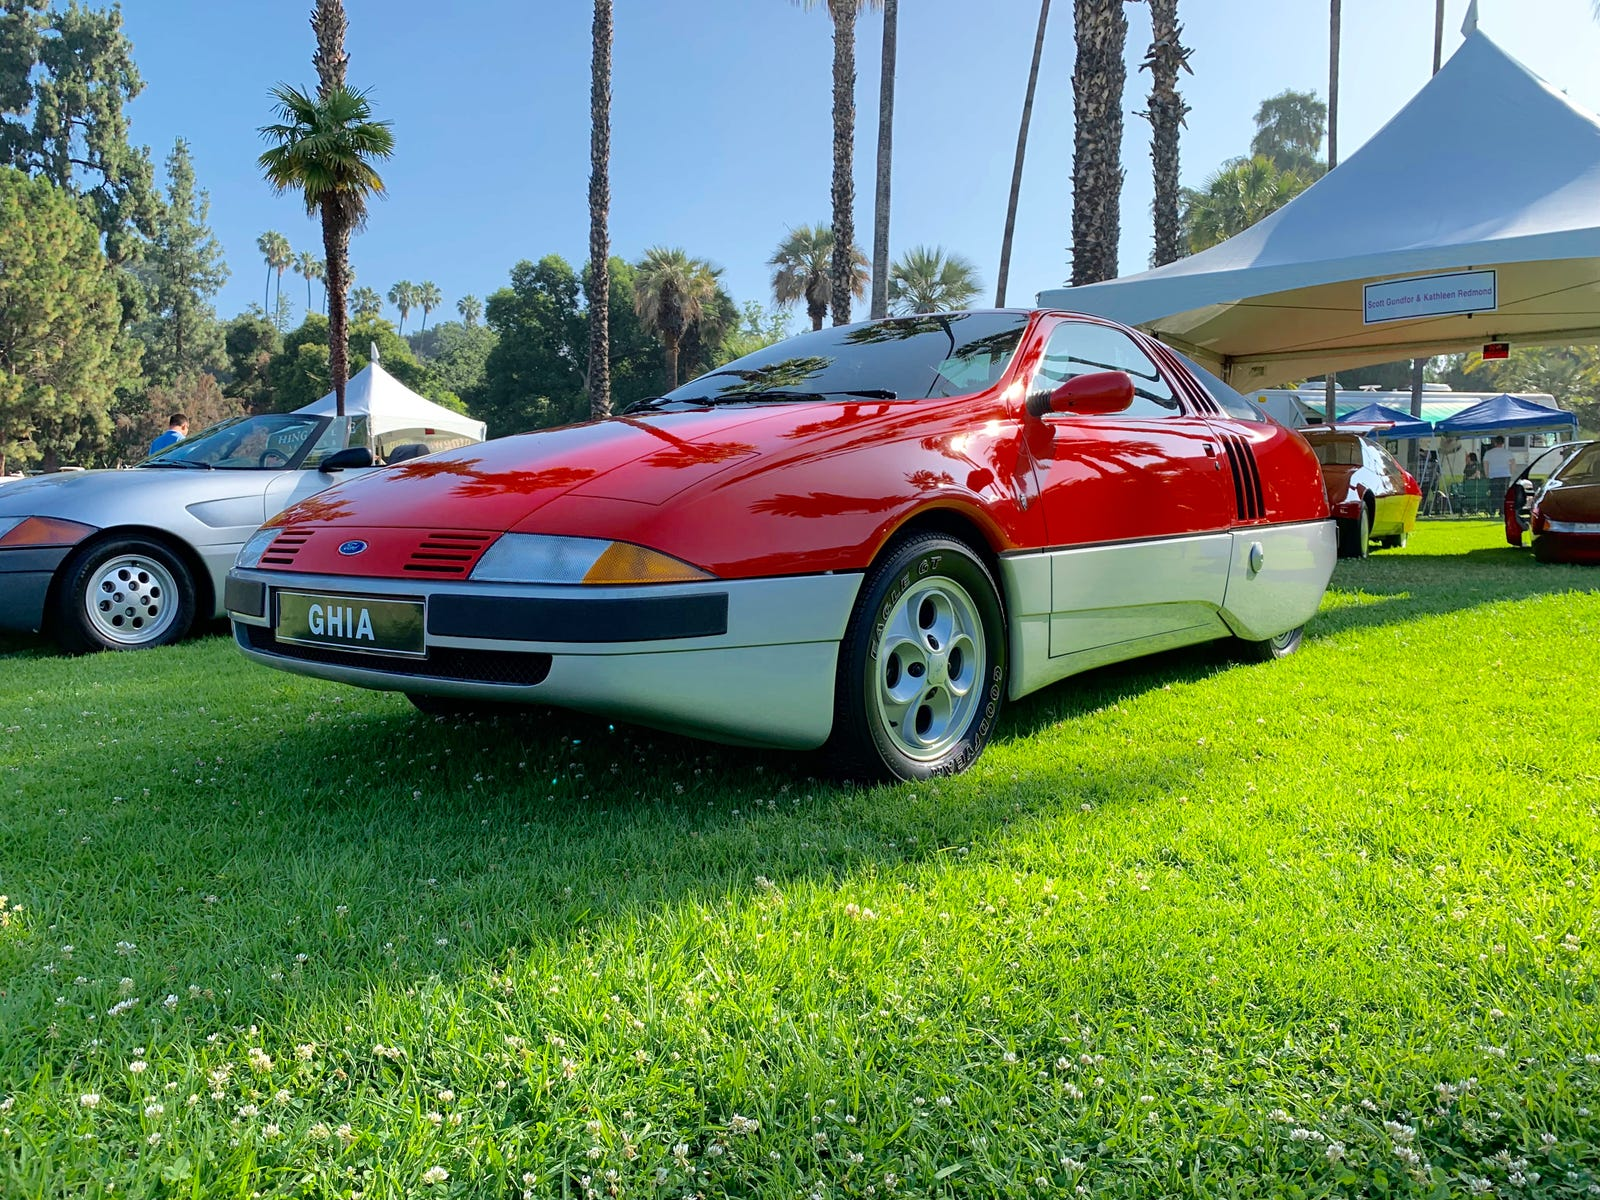 Also from 1982 is the Ghia Brezza which looks like it was built for an 80's sci fi movie.